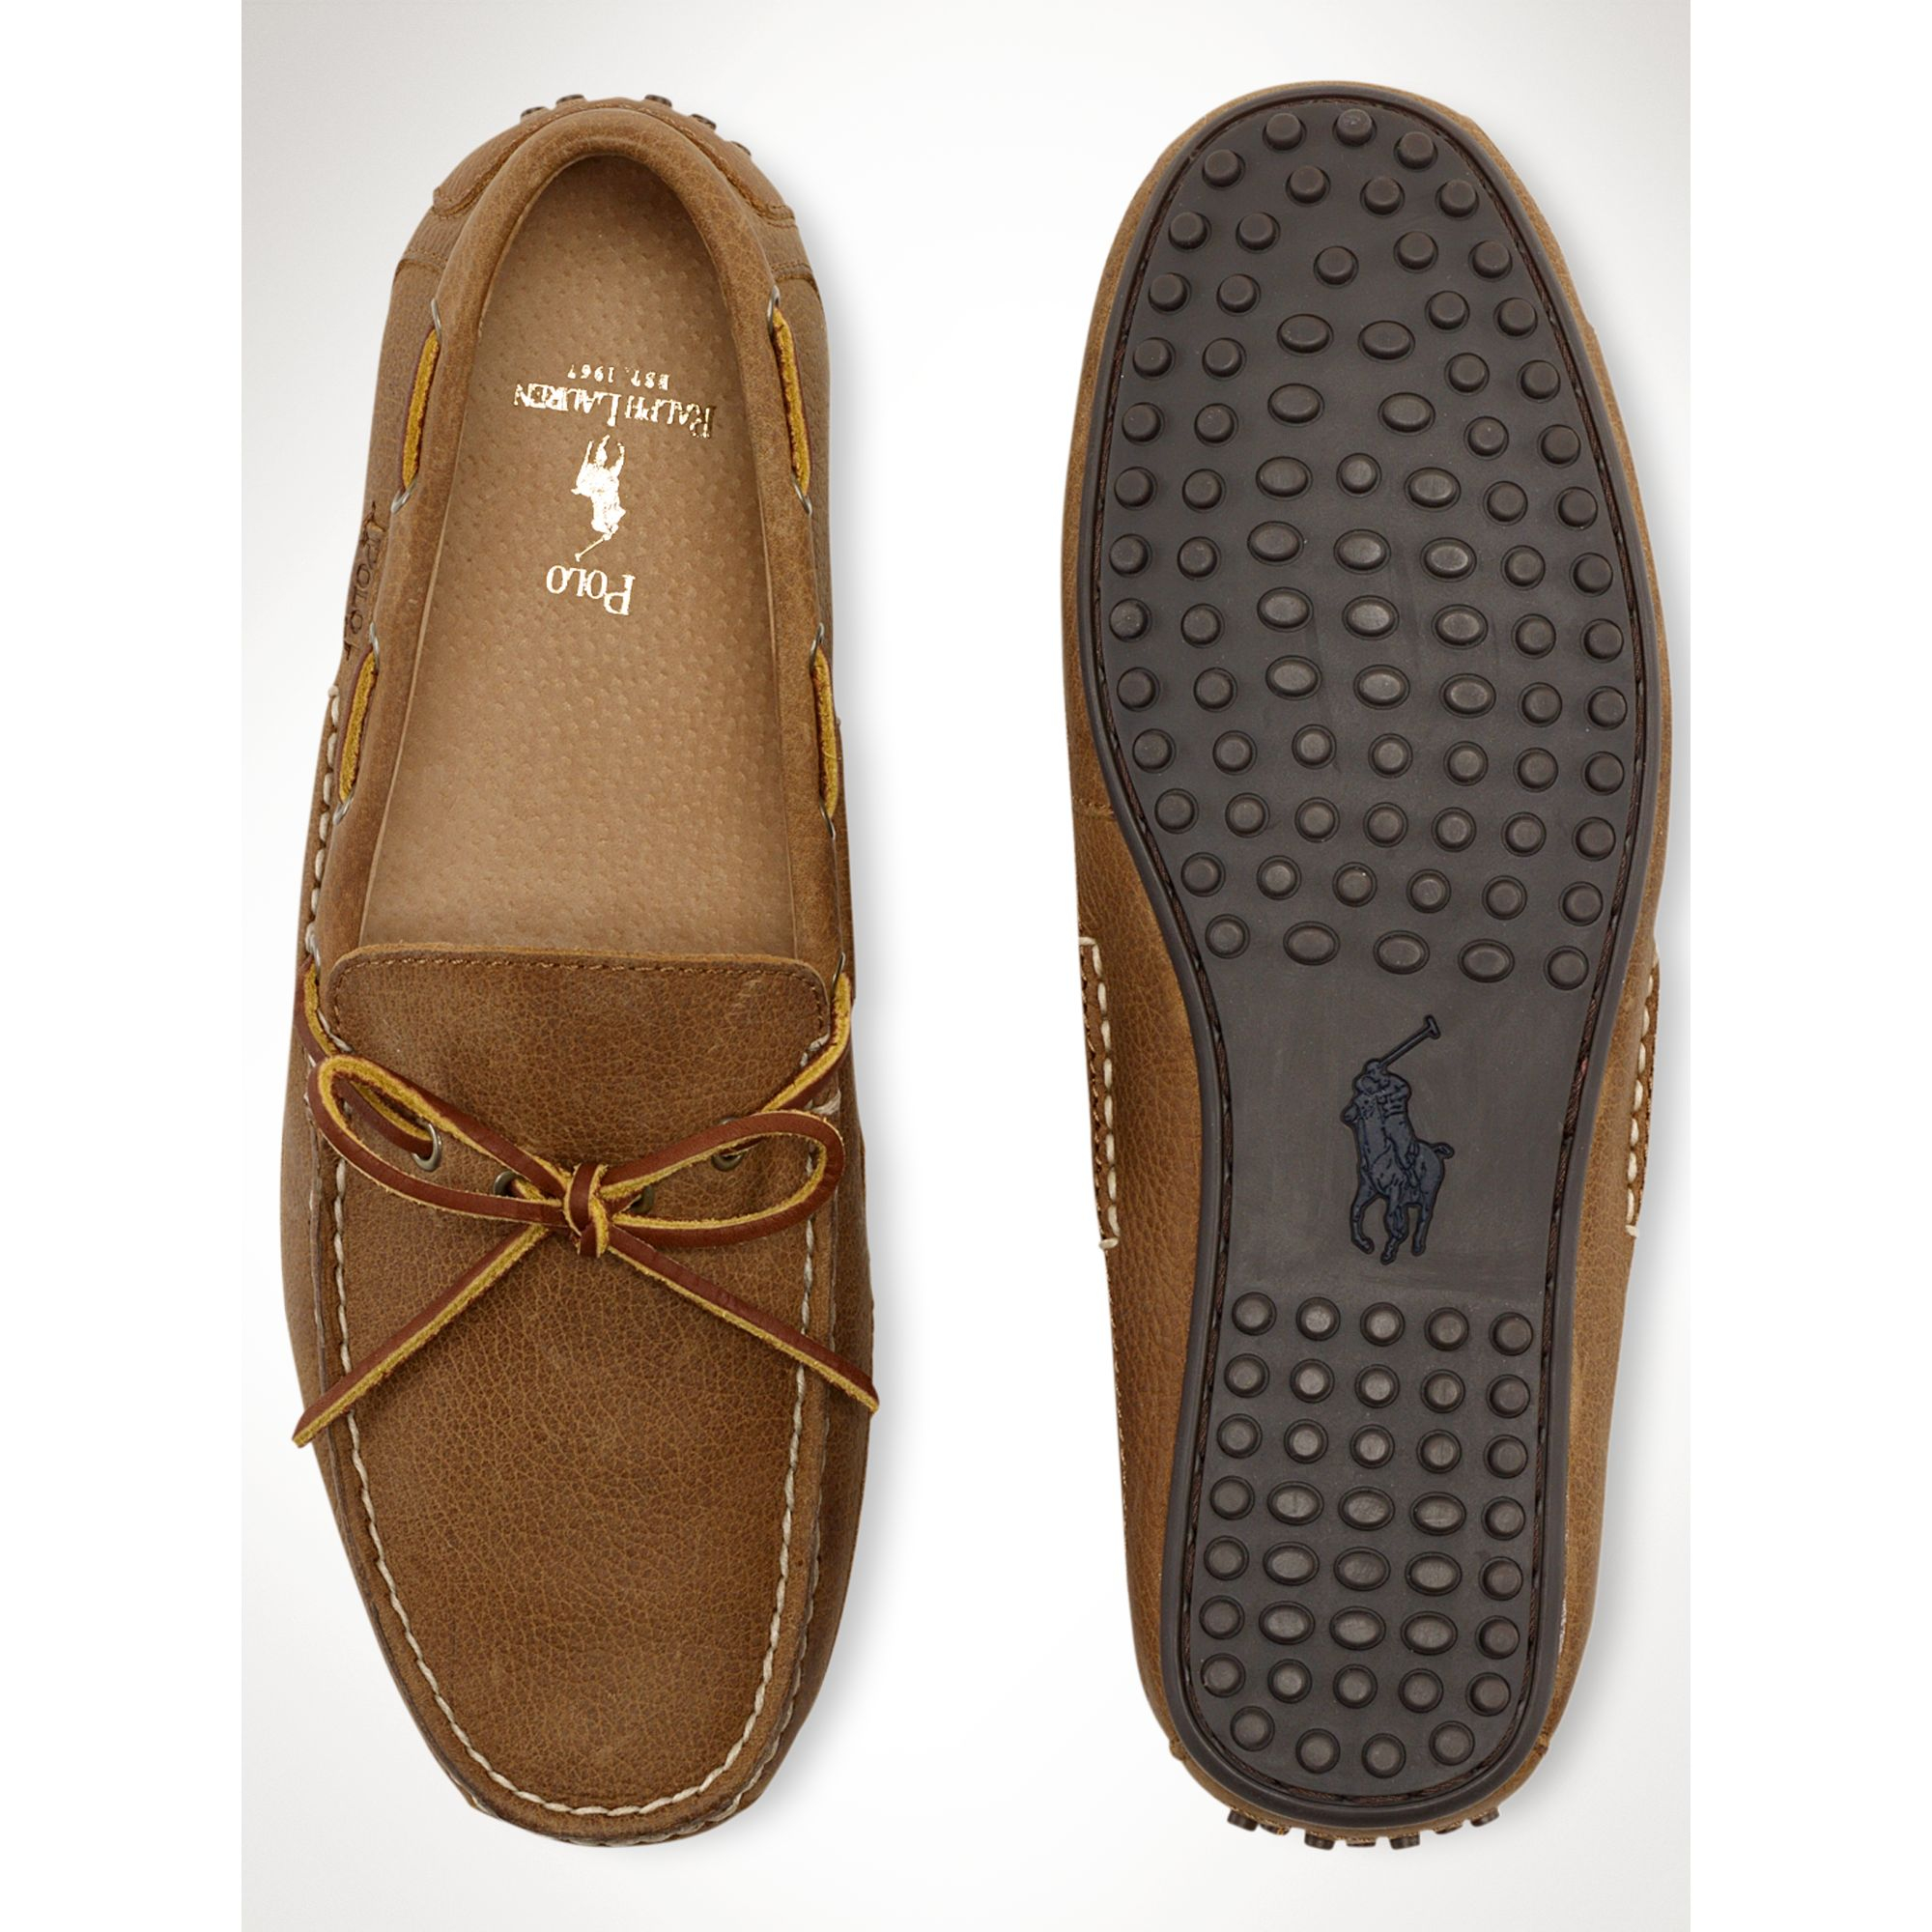 0cf22a4b5c3 Lyst - Polo Ralph Lauren Wyndings Loafer in Brown for Men